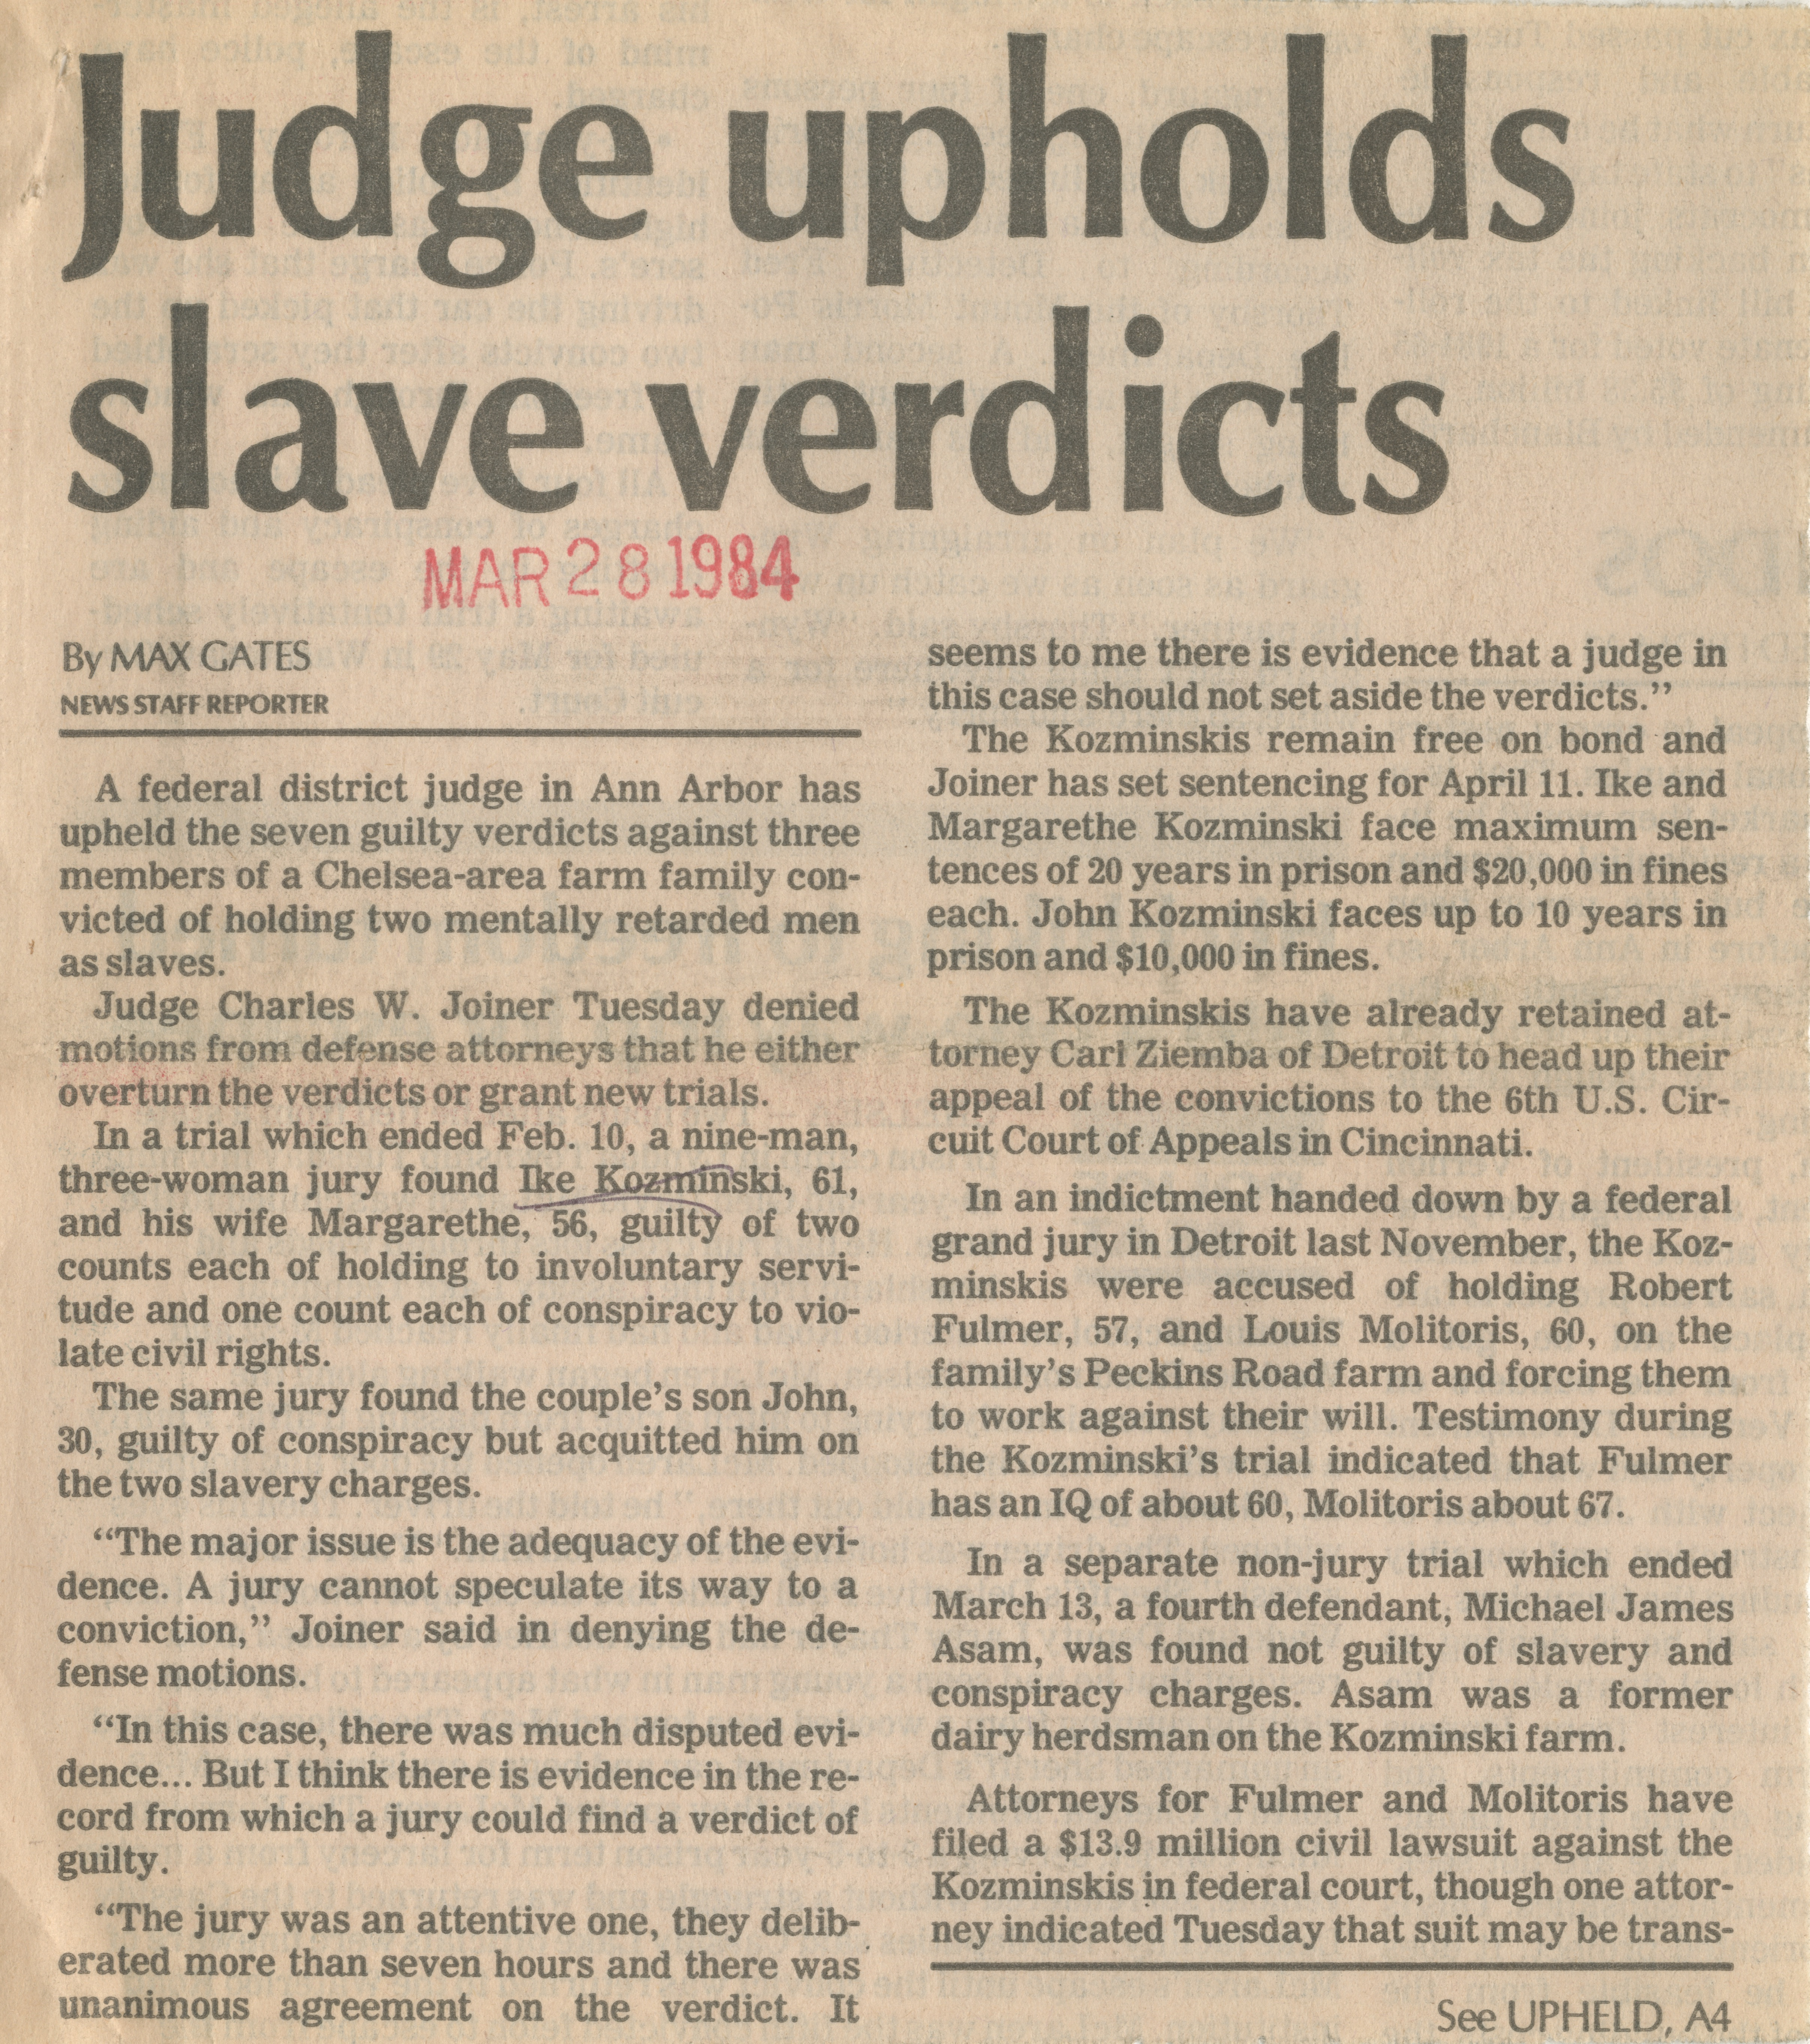 Judge upholds slave verdicts image